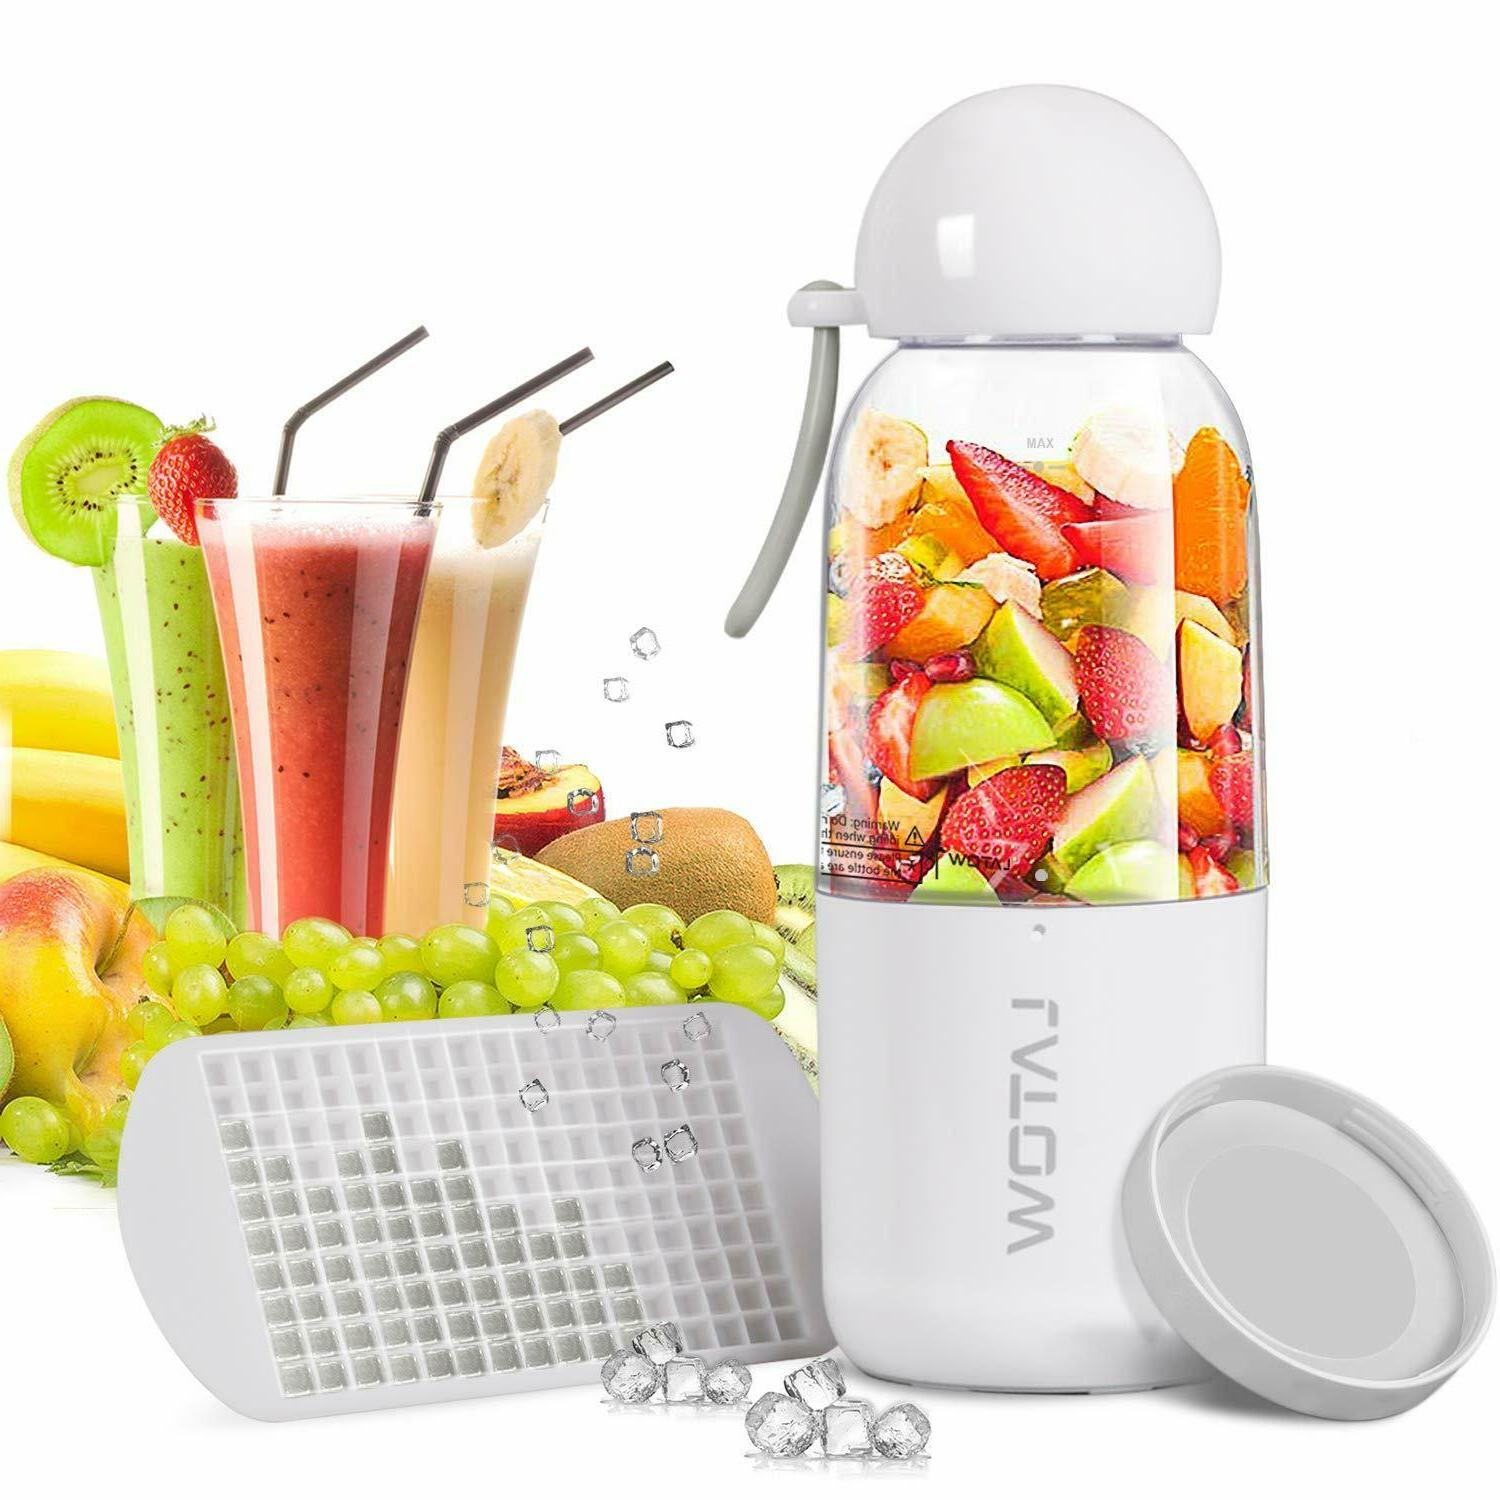 Portable Blender USB Juicer Cup Fruit Mixing Machine, Rechar